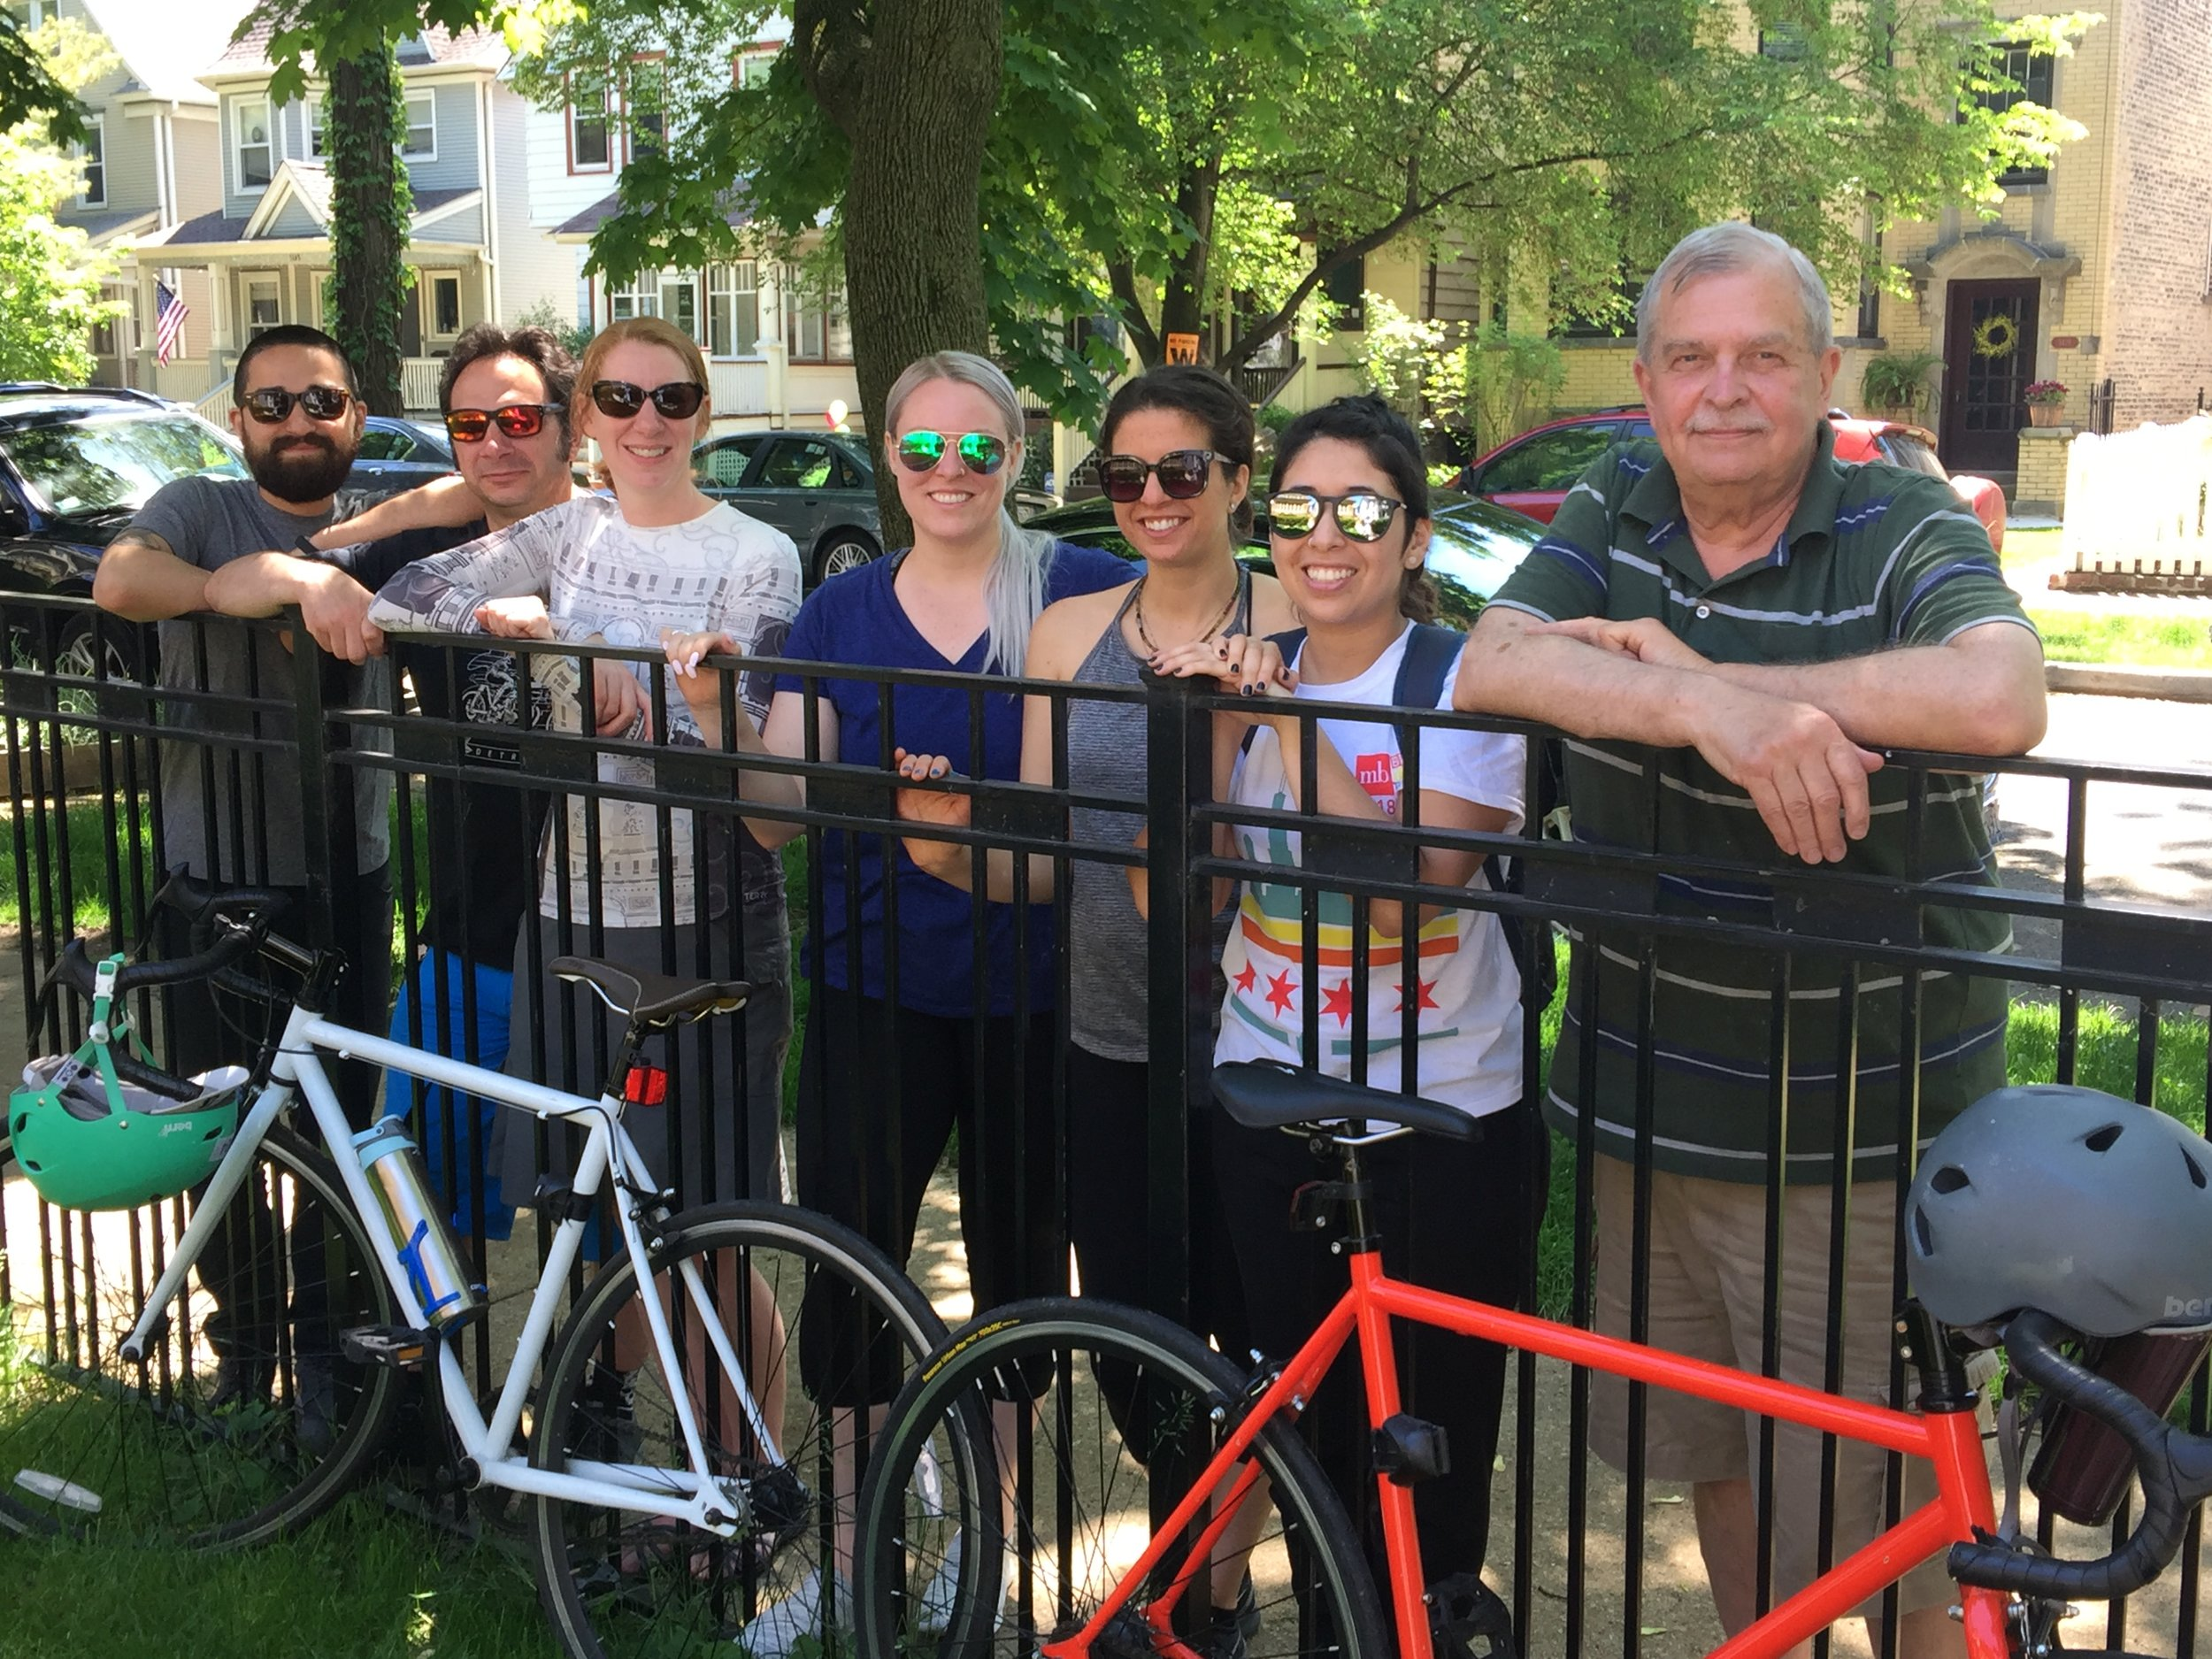 Bike the Drive                     May 27, 2018 - Kmetko staff and friends enjoy Bike the Drive.